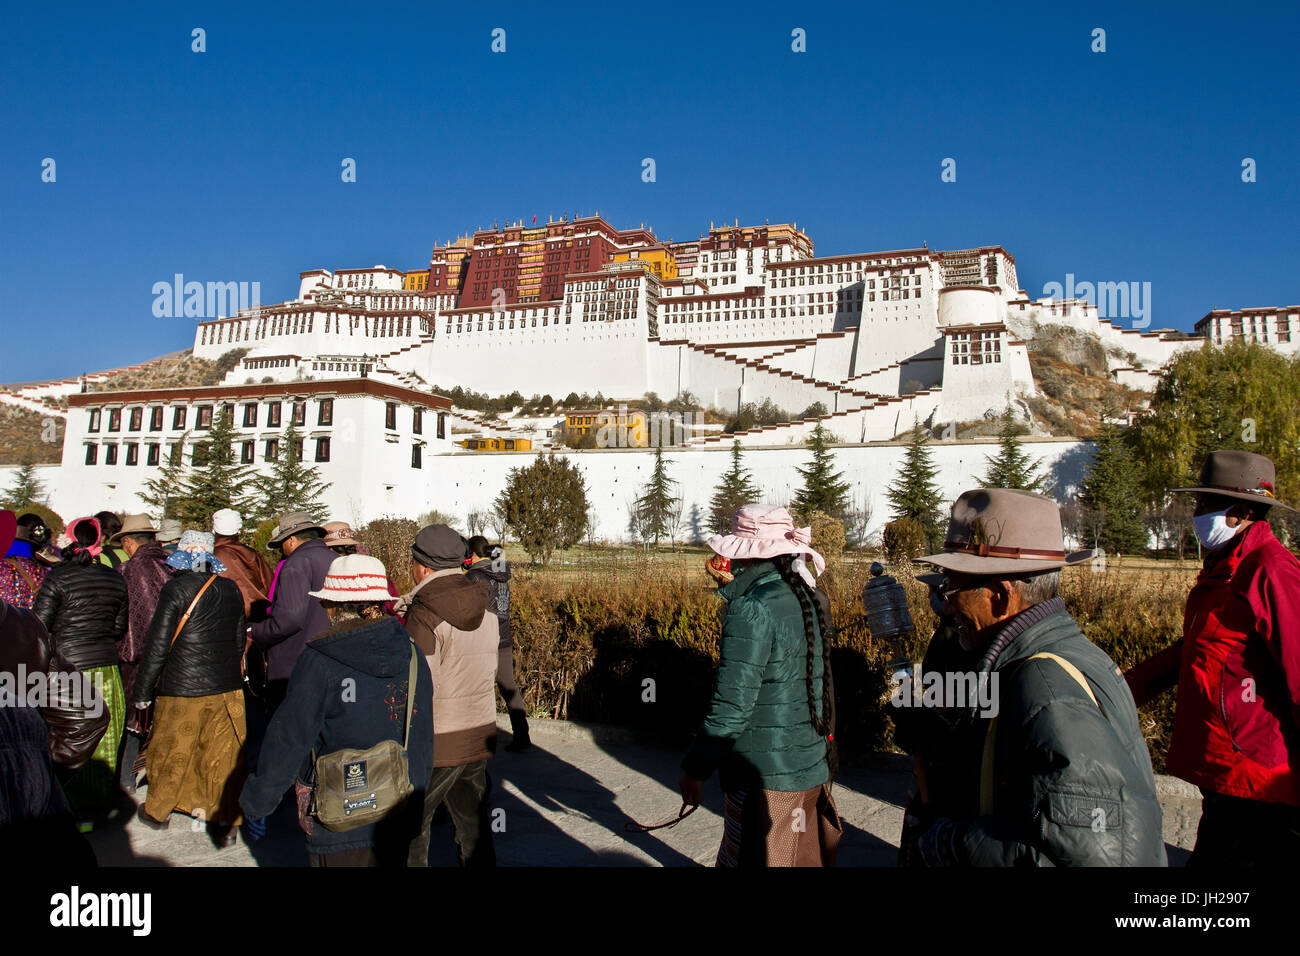 The Potala Palace, UNESCO World Heritage Site, with Tibetan Buddhist devotees, Lhasa, Tibet, China, Asia - Stock Image